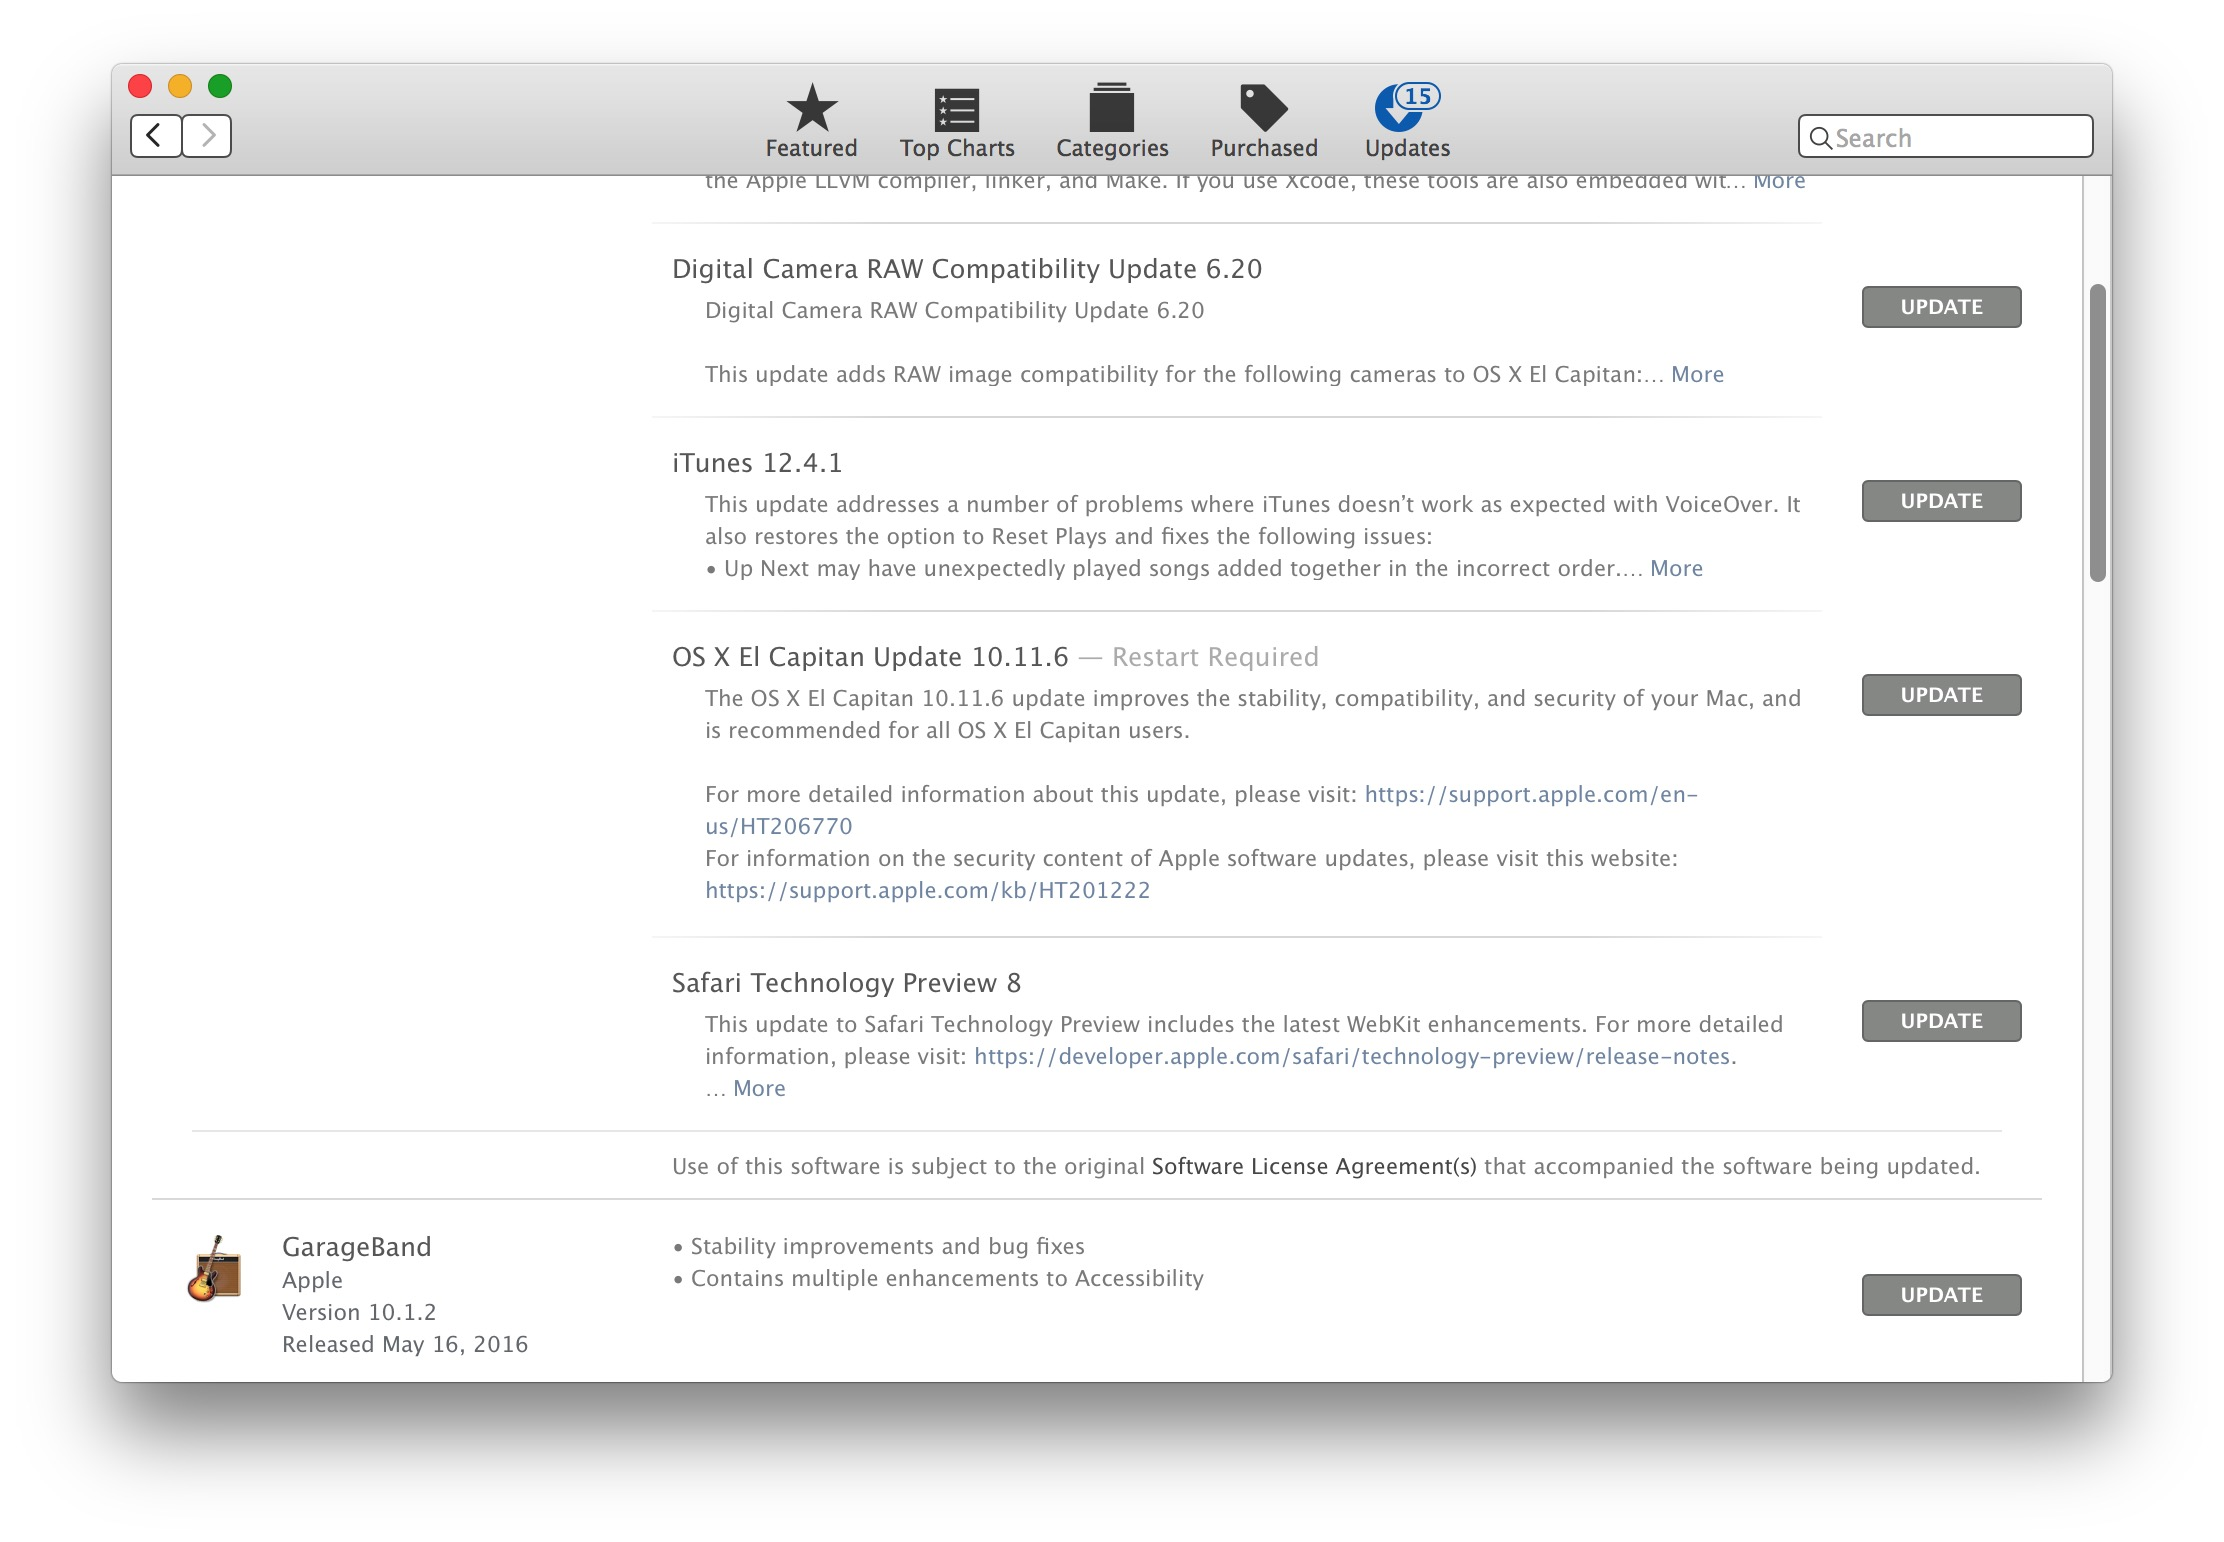 OS X 10.11.6 Update download